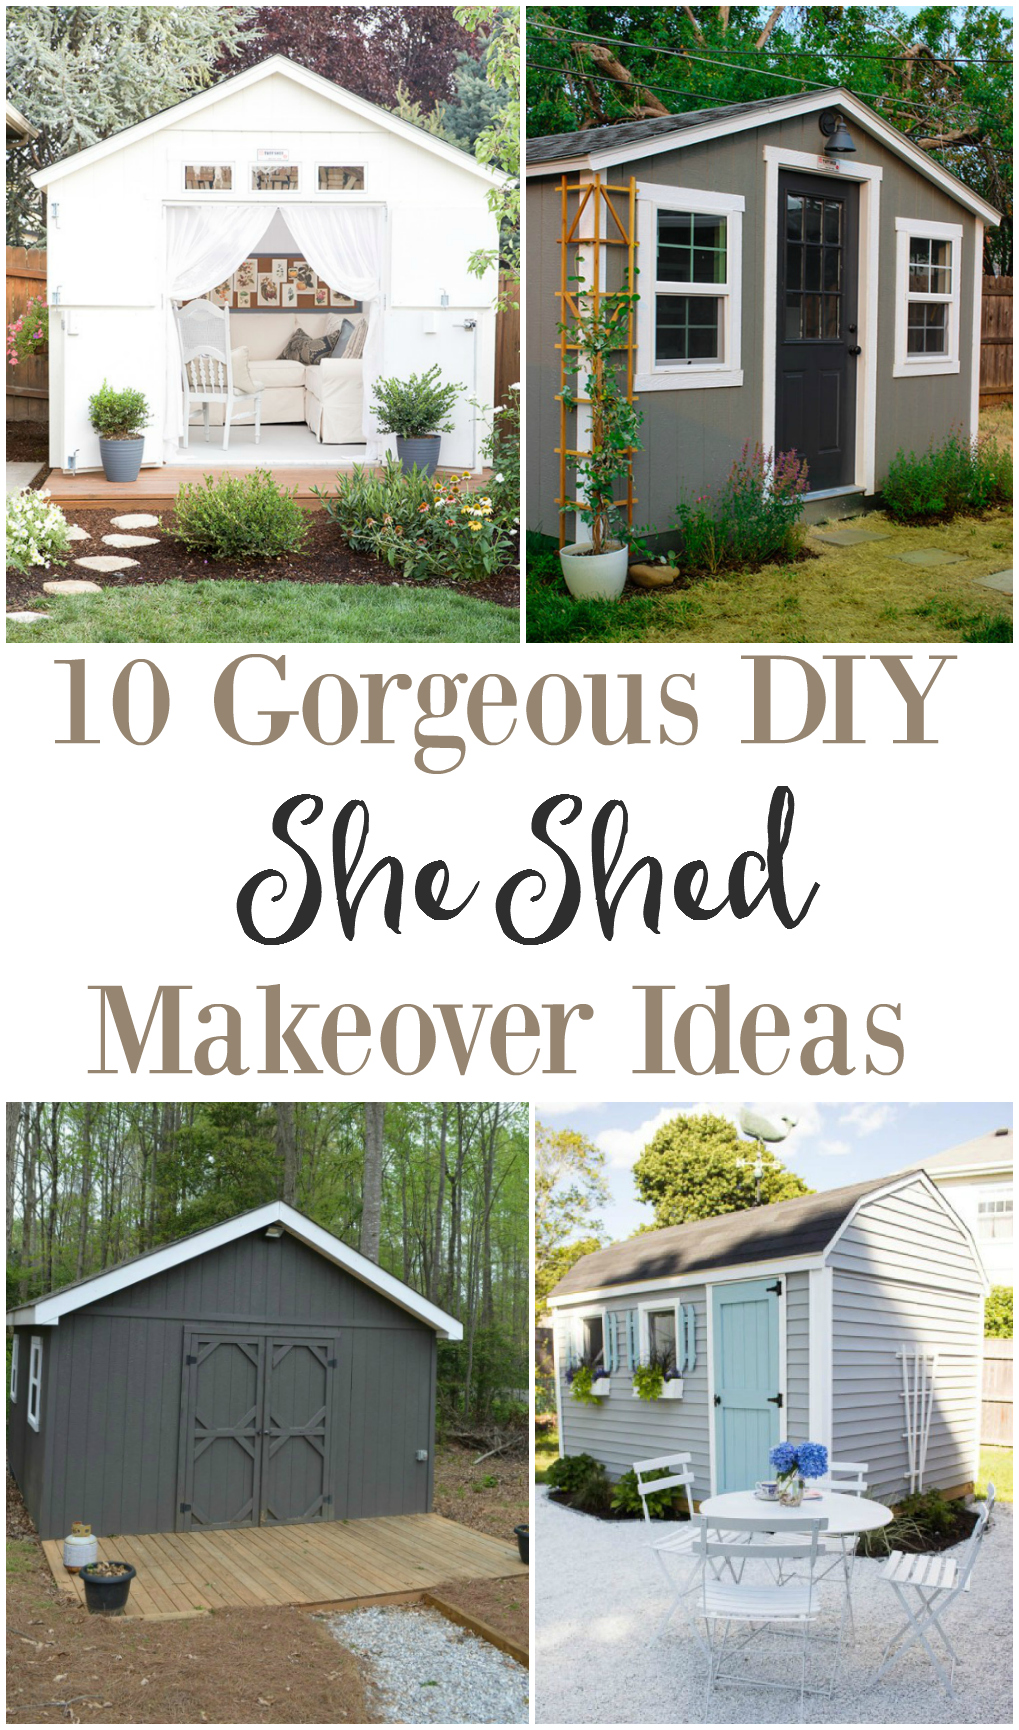 Examplary Diy She Shed Makeover Se Ladies Turned A Tool Shedinto A She Shed Makeover Ideas Weared Fox Cheap Easy Backyard Makeovers Inexpensive Backyard Makeover Ideas outdoor Easy Backyard Makeover